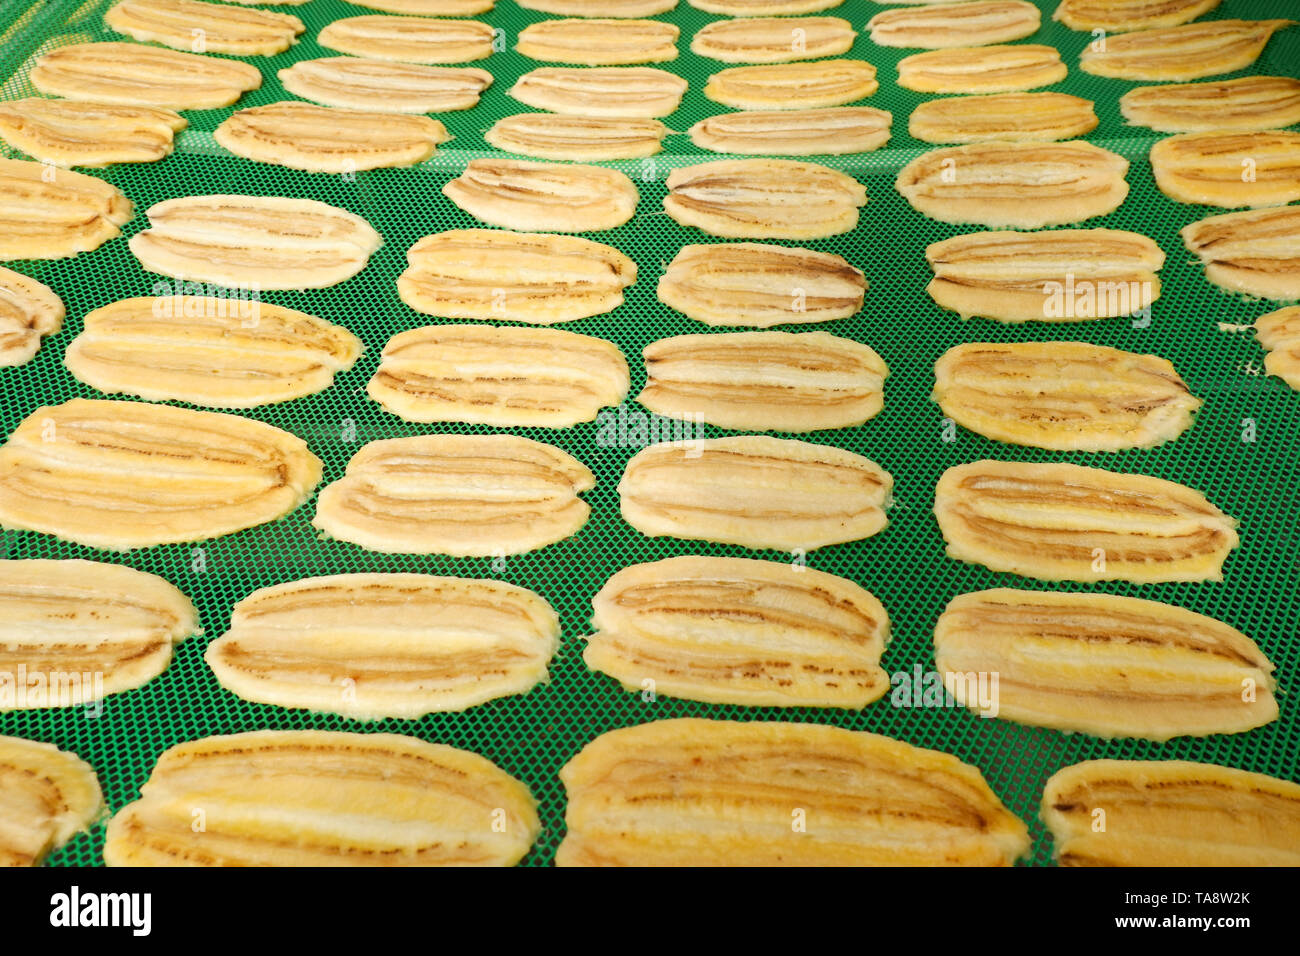 Dried fruit organic / Making dry banana fruit on net in room temperature control to dry with sunlight and smoked the heat from gas - slice dried banan - Stock Image